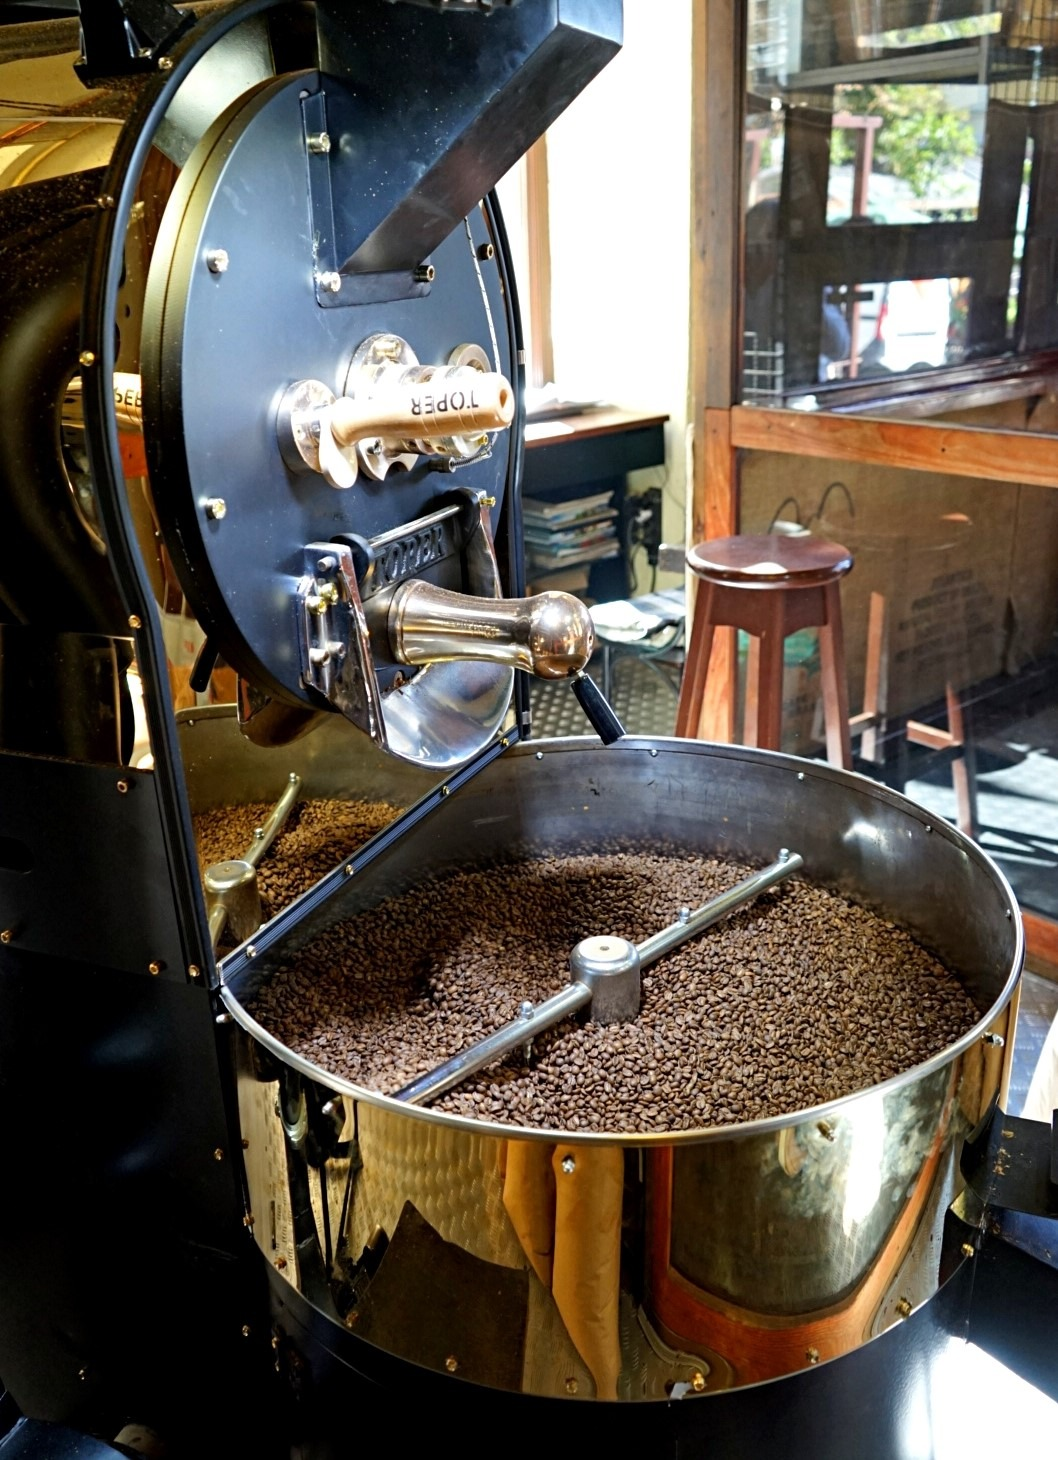 The Best Souvenirs To Bring From Lviv: Coffee Mine